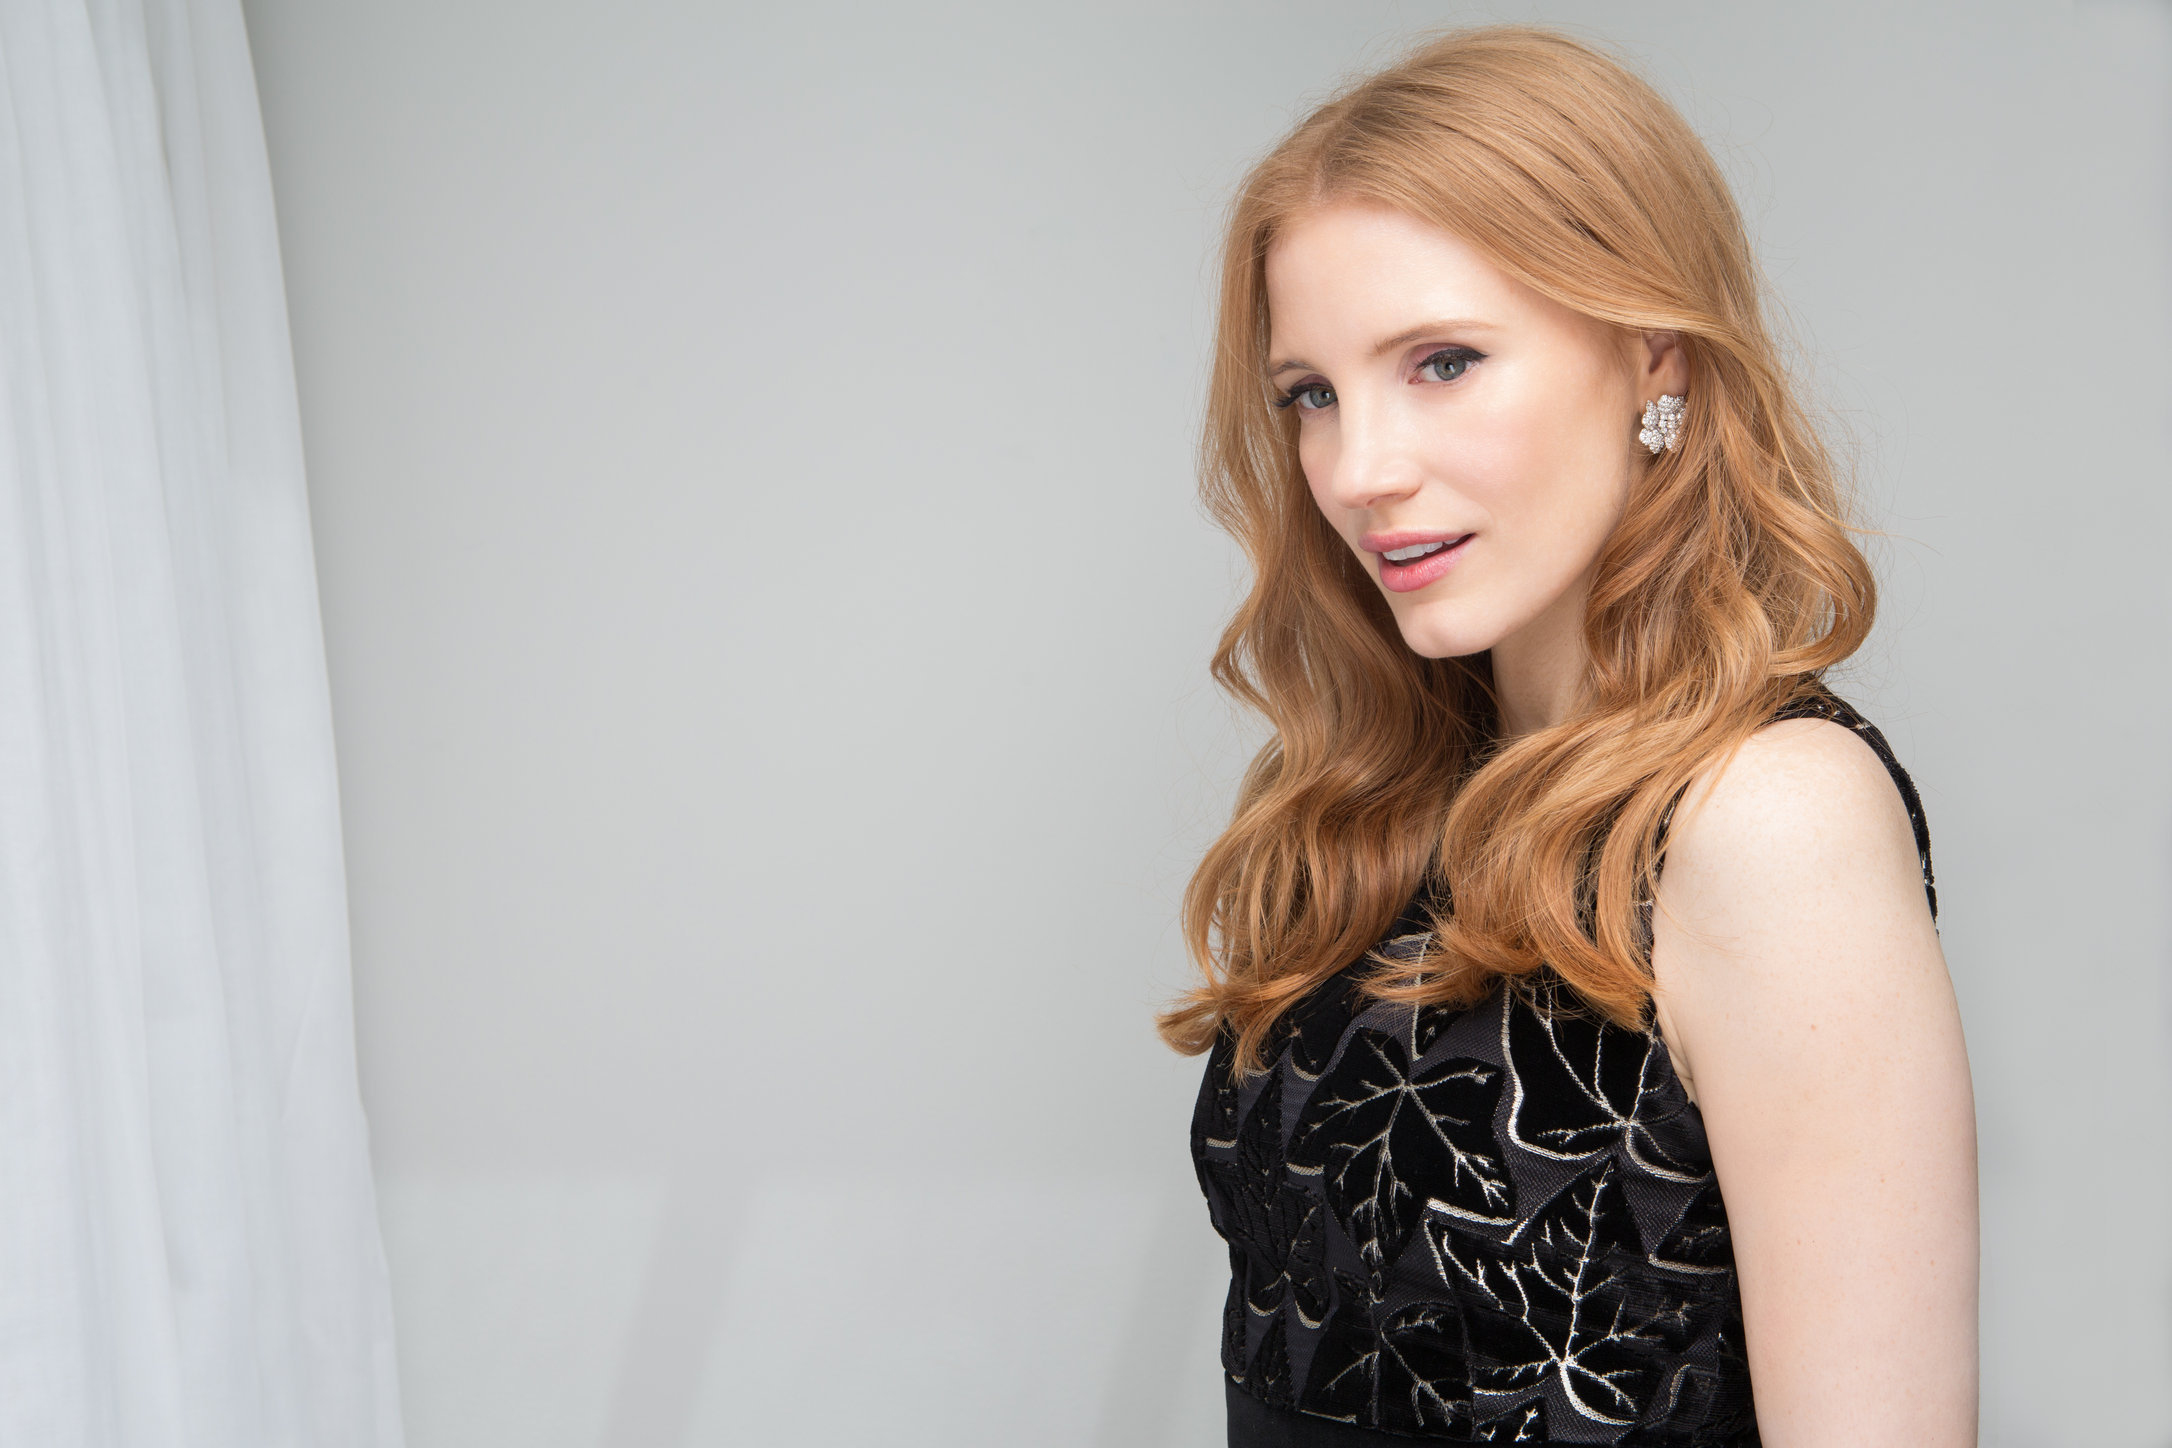 jessica chastain, actress